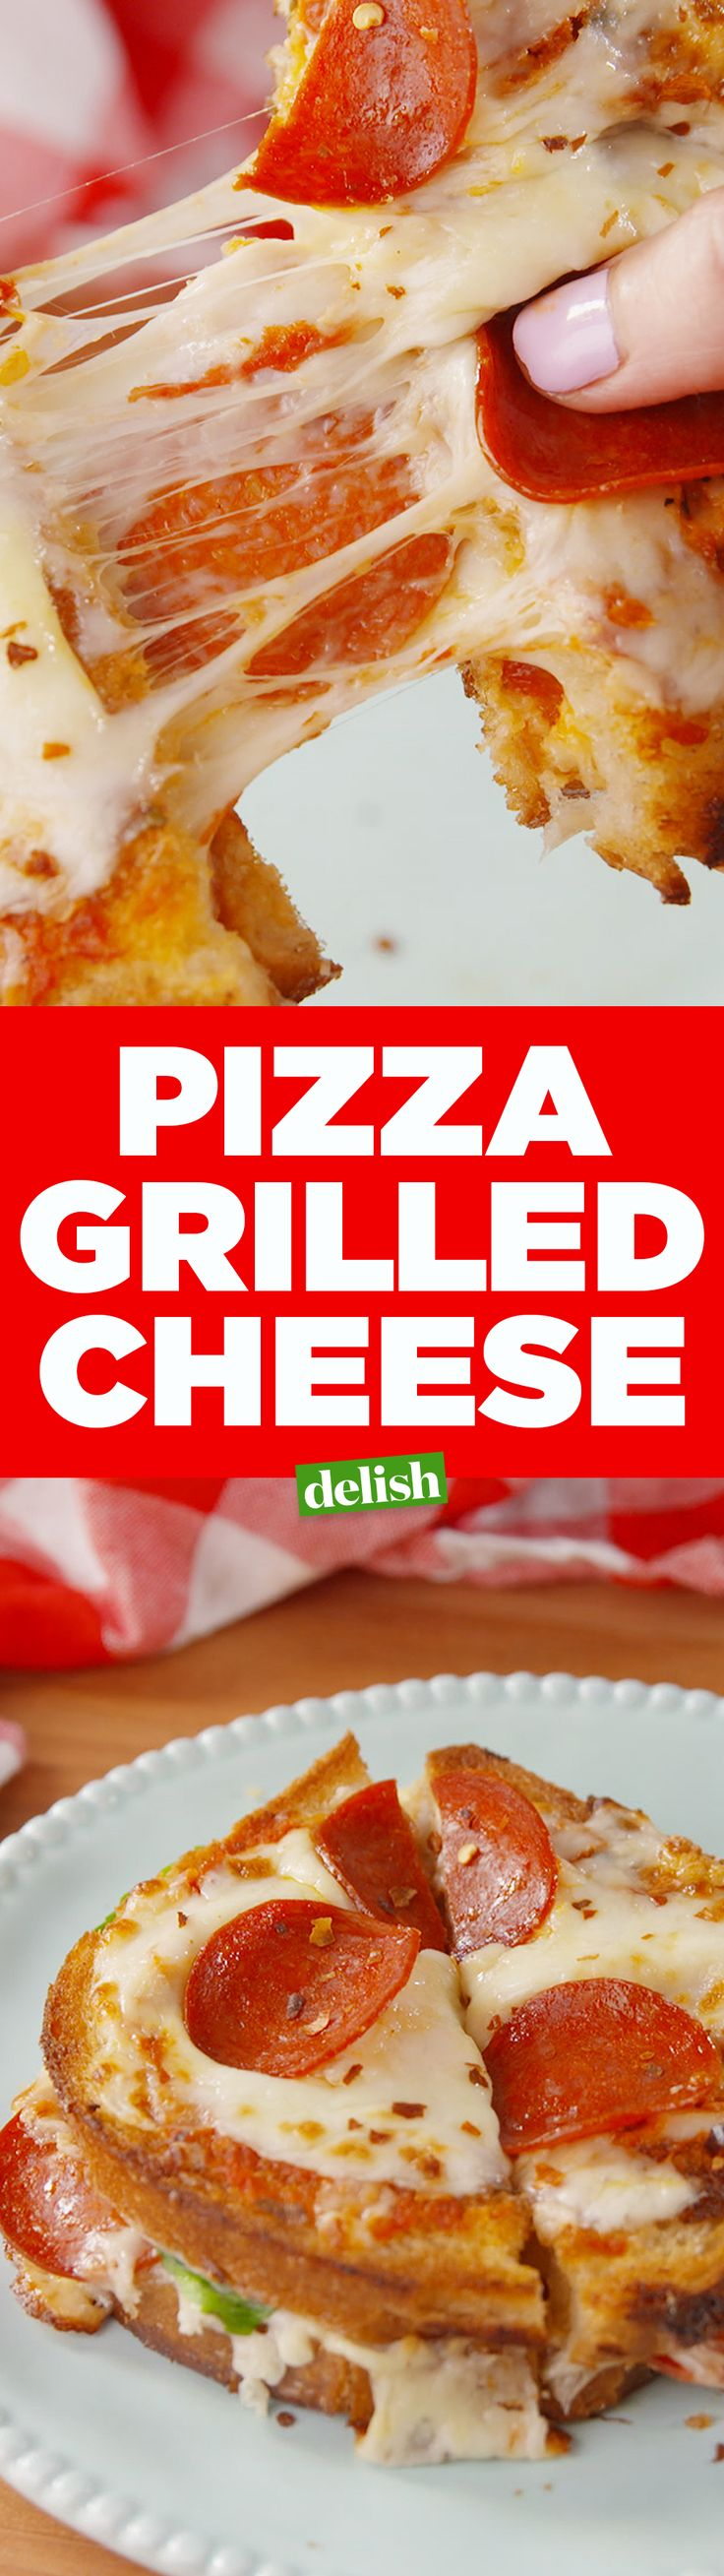 Pizza Grilled Cheese is probably the best thing we've ever made. Get the recipe on Delish.com.